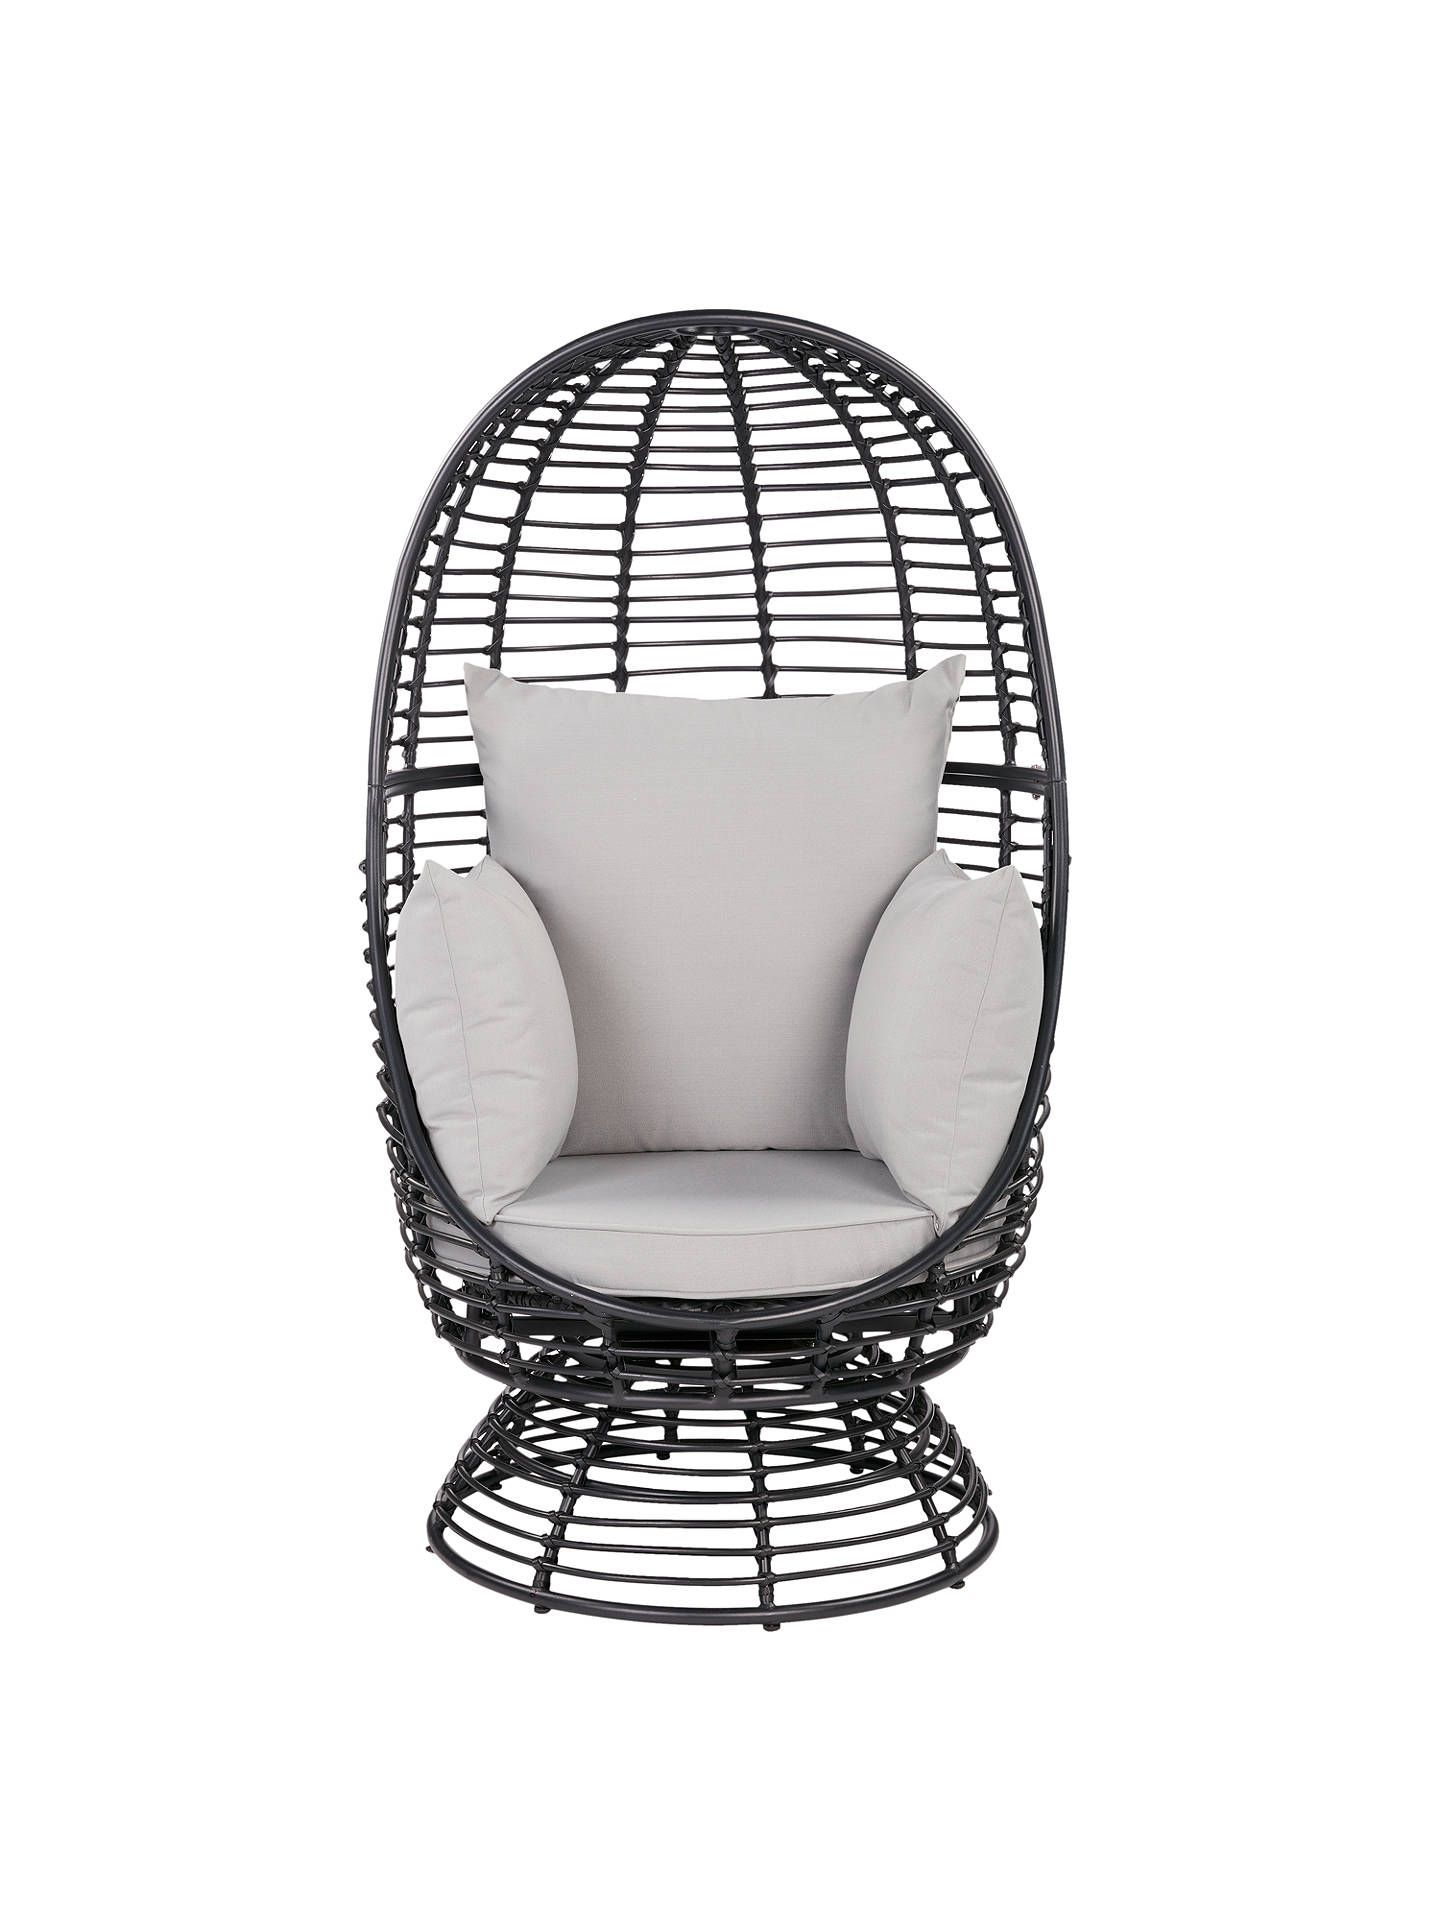 Buy John Lewis & Partners Cabana Swivel Pod Garden Chair, Black Online at johnlewis.com